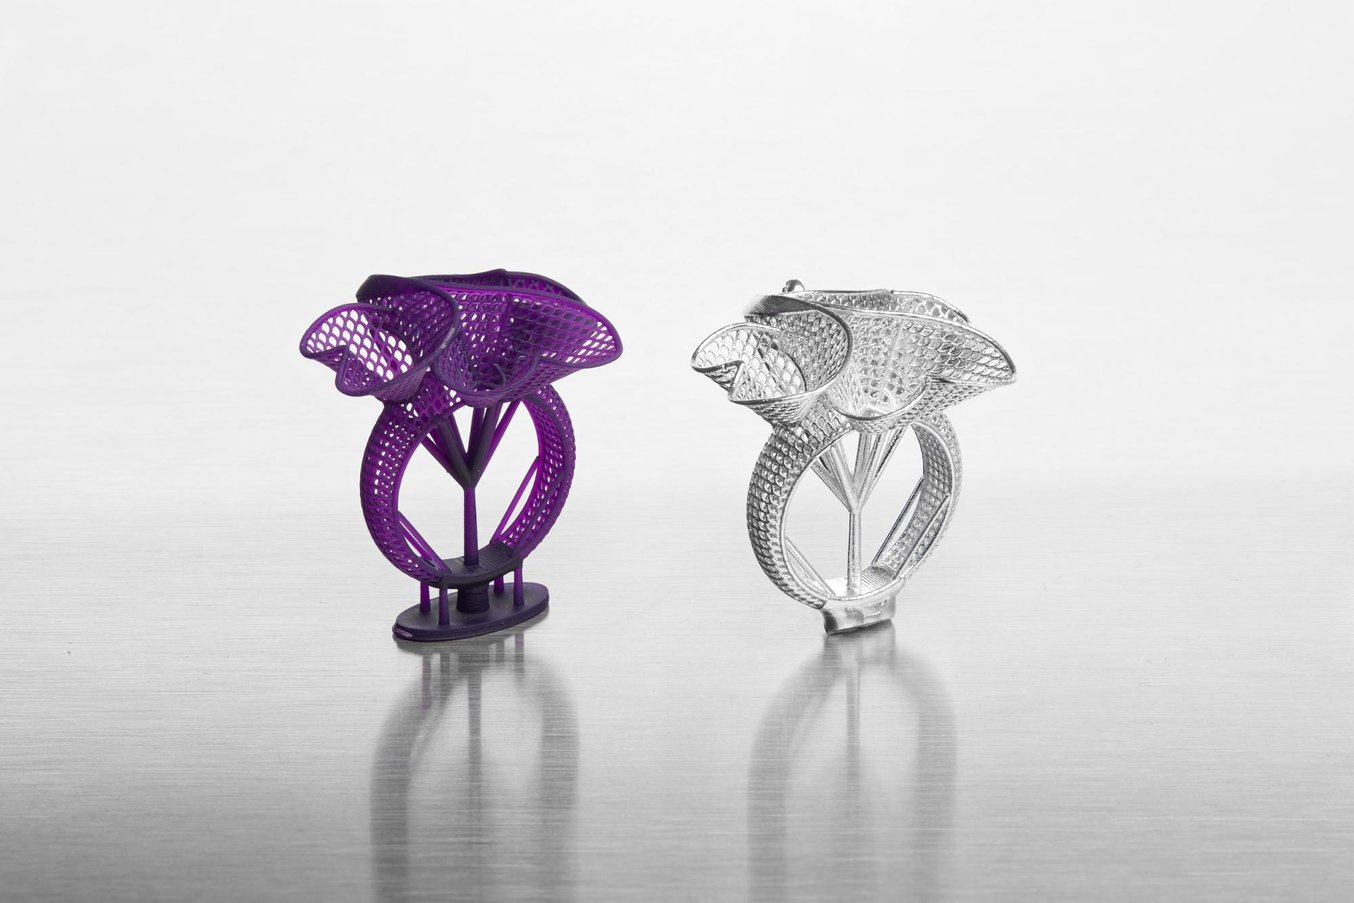 Castable Wax Resin 3D printed ring